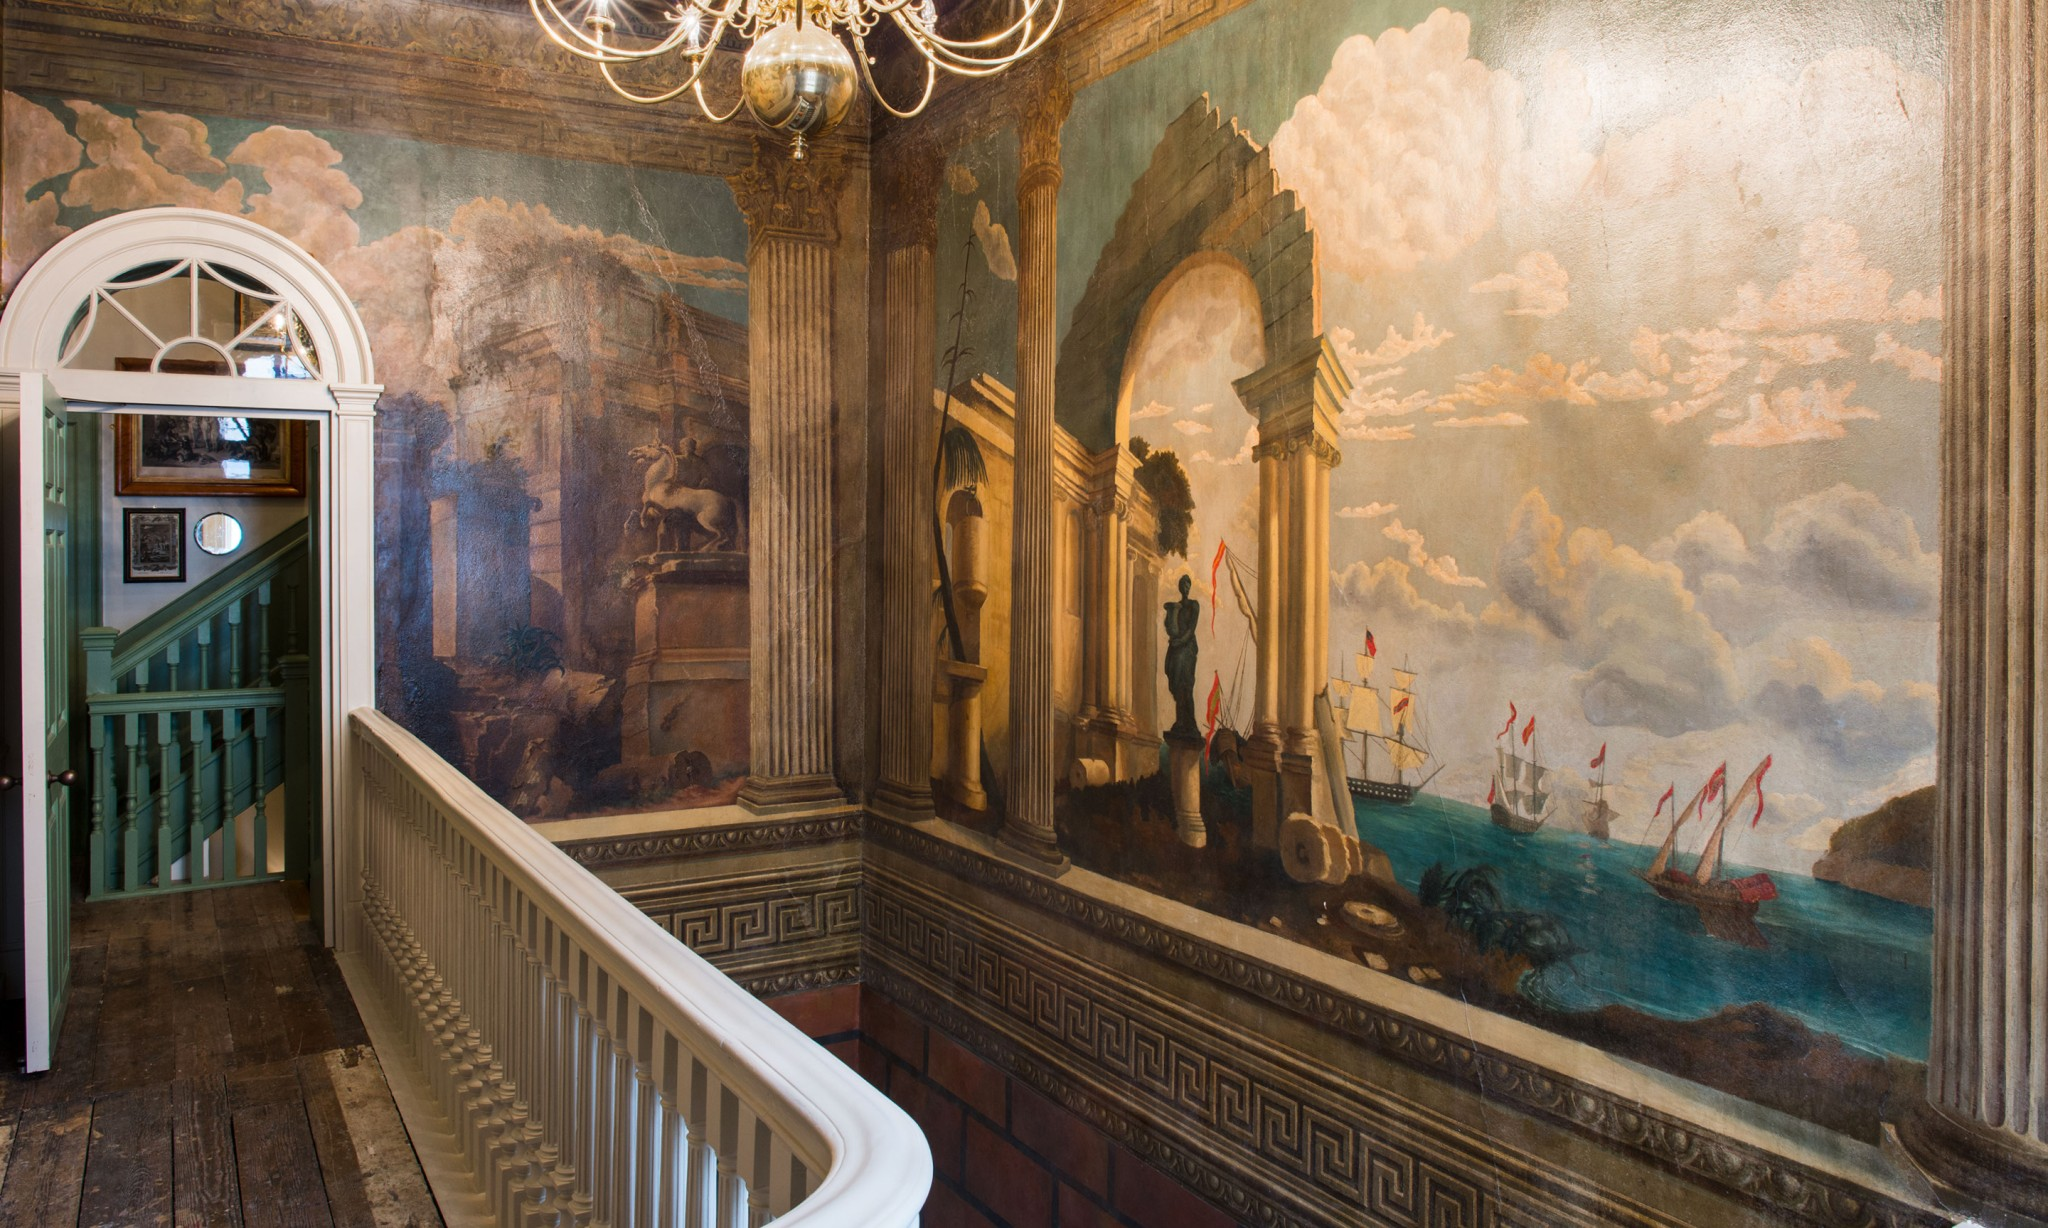 A stairwell with murals painted on the walls.